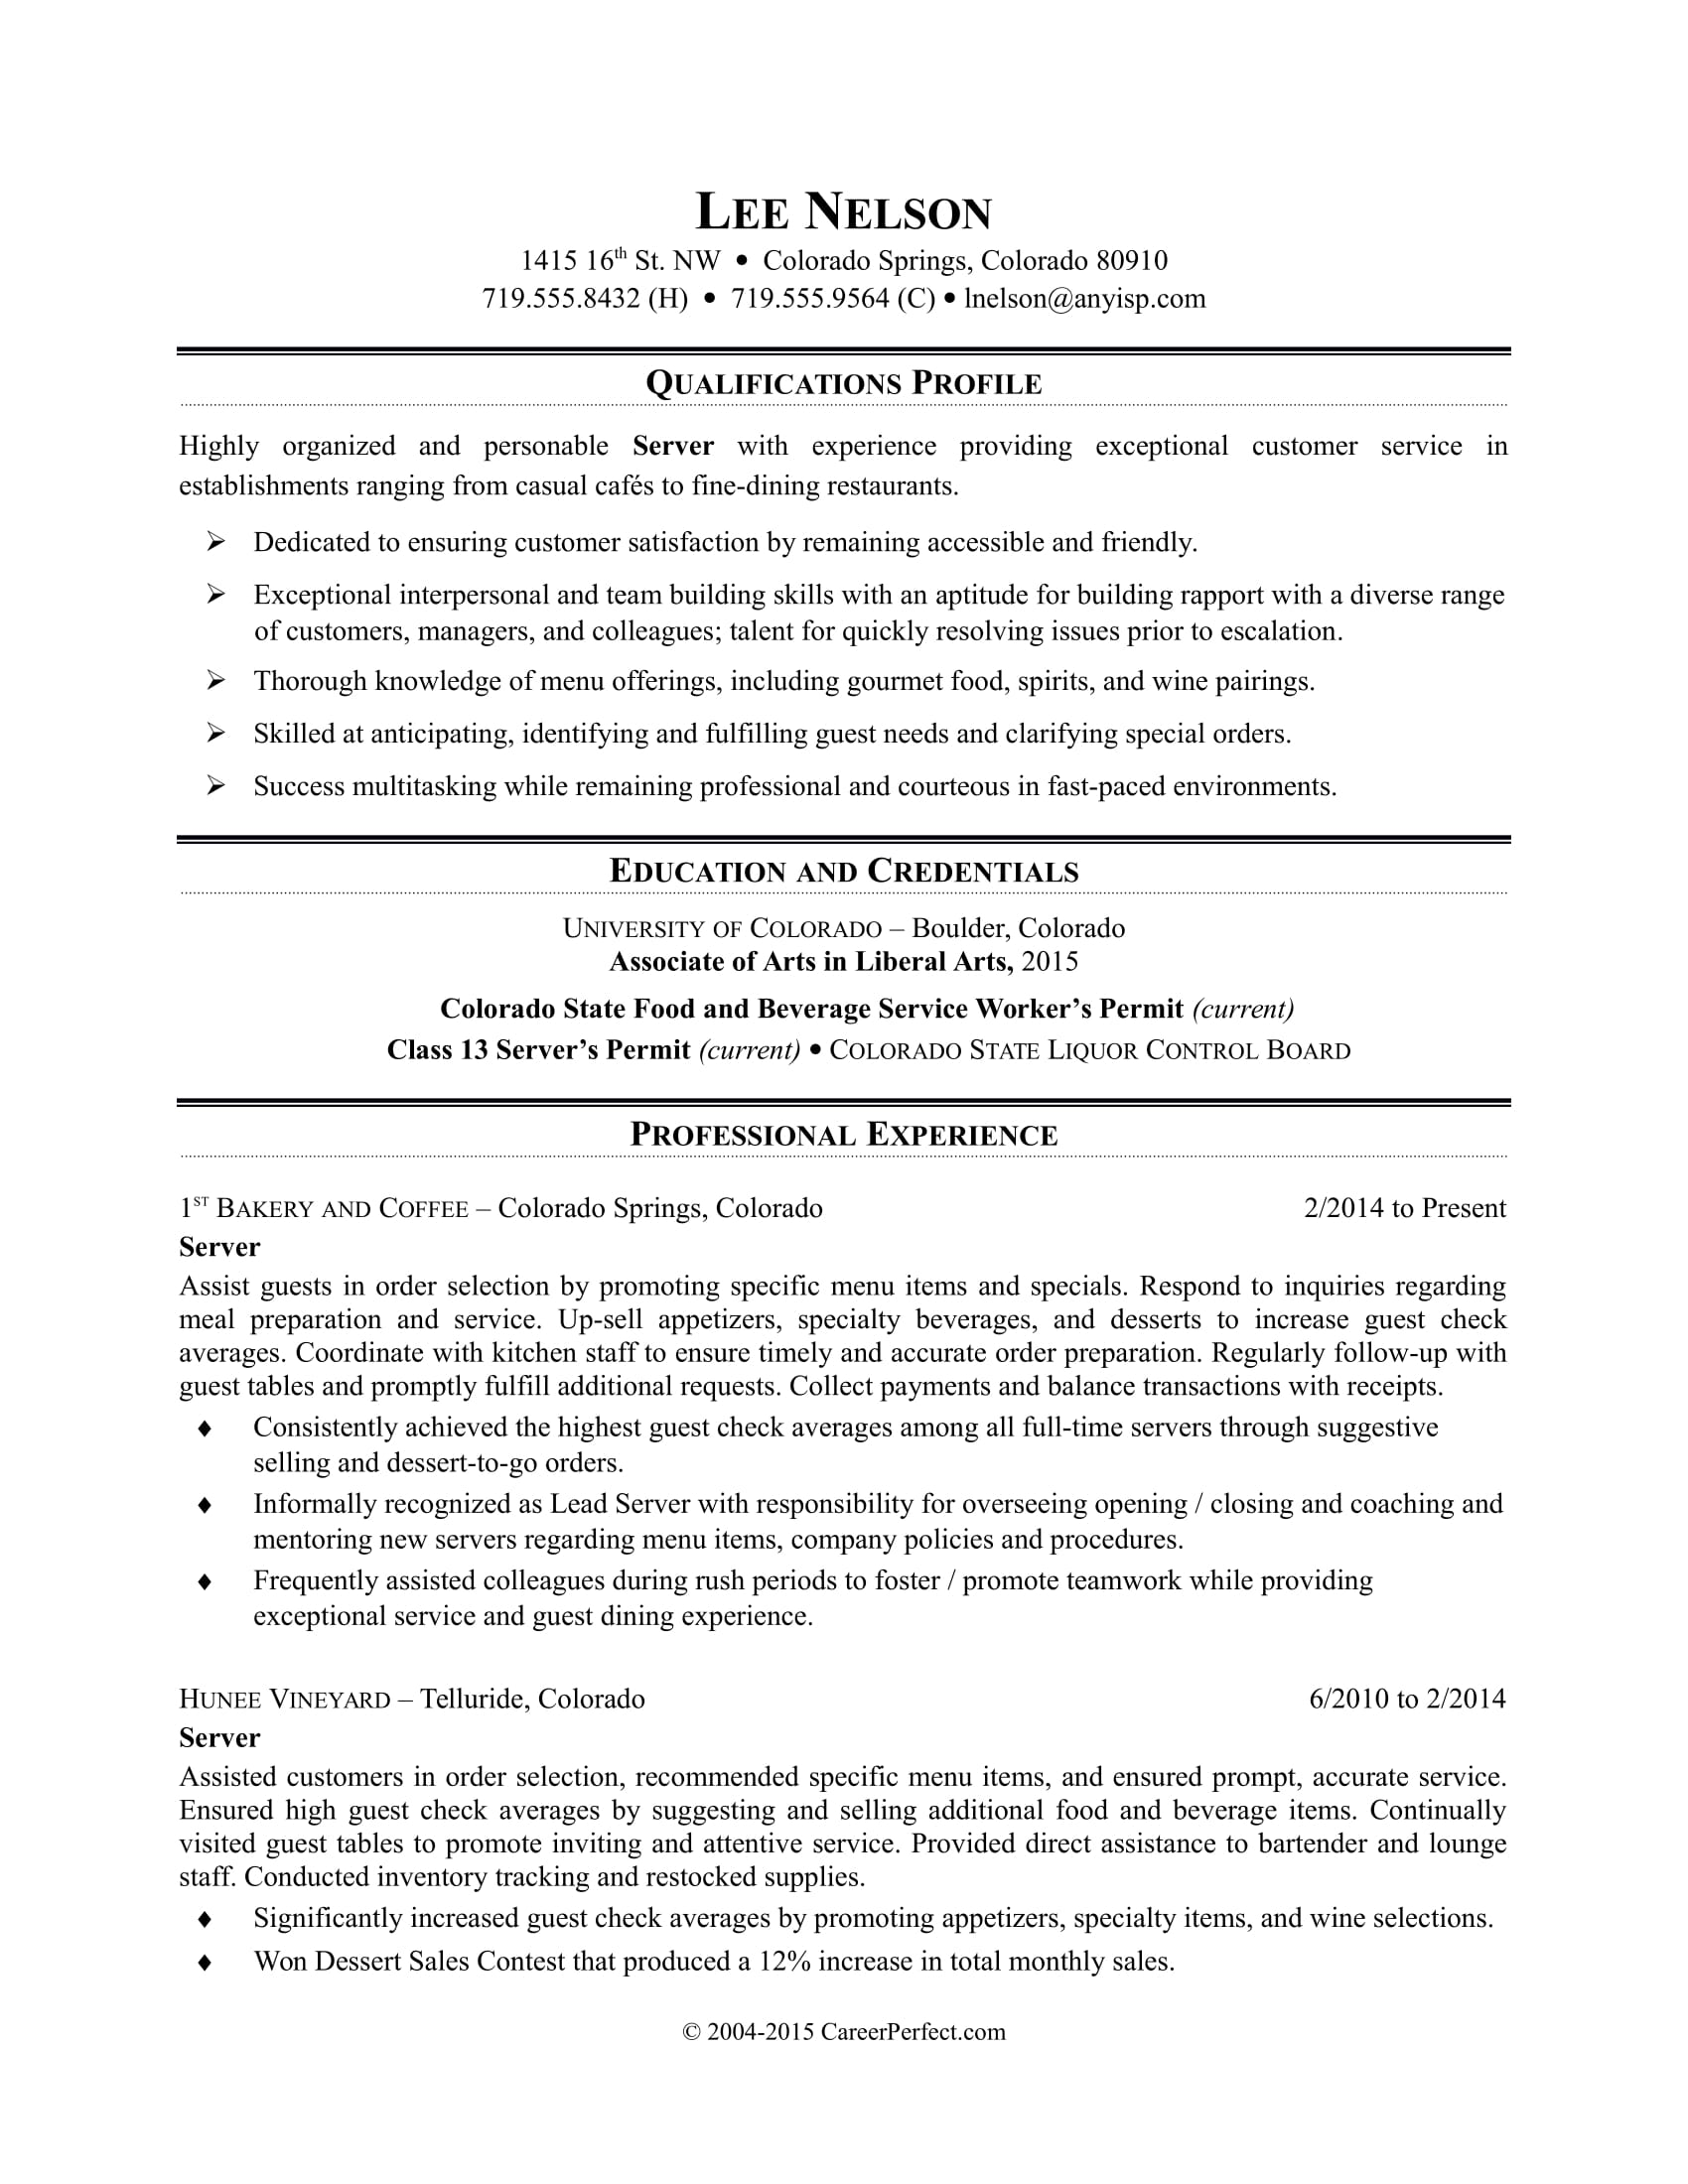 sample resume for a restaurant server - Sample Resume